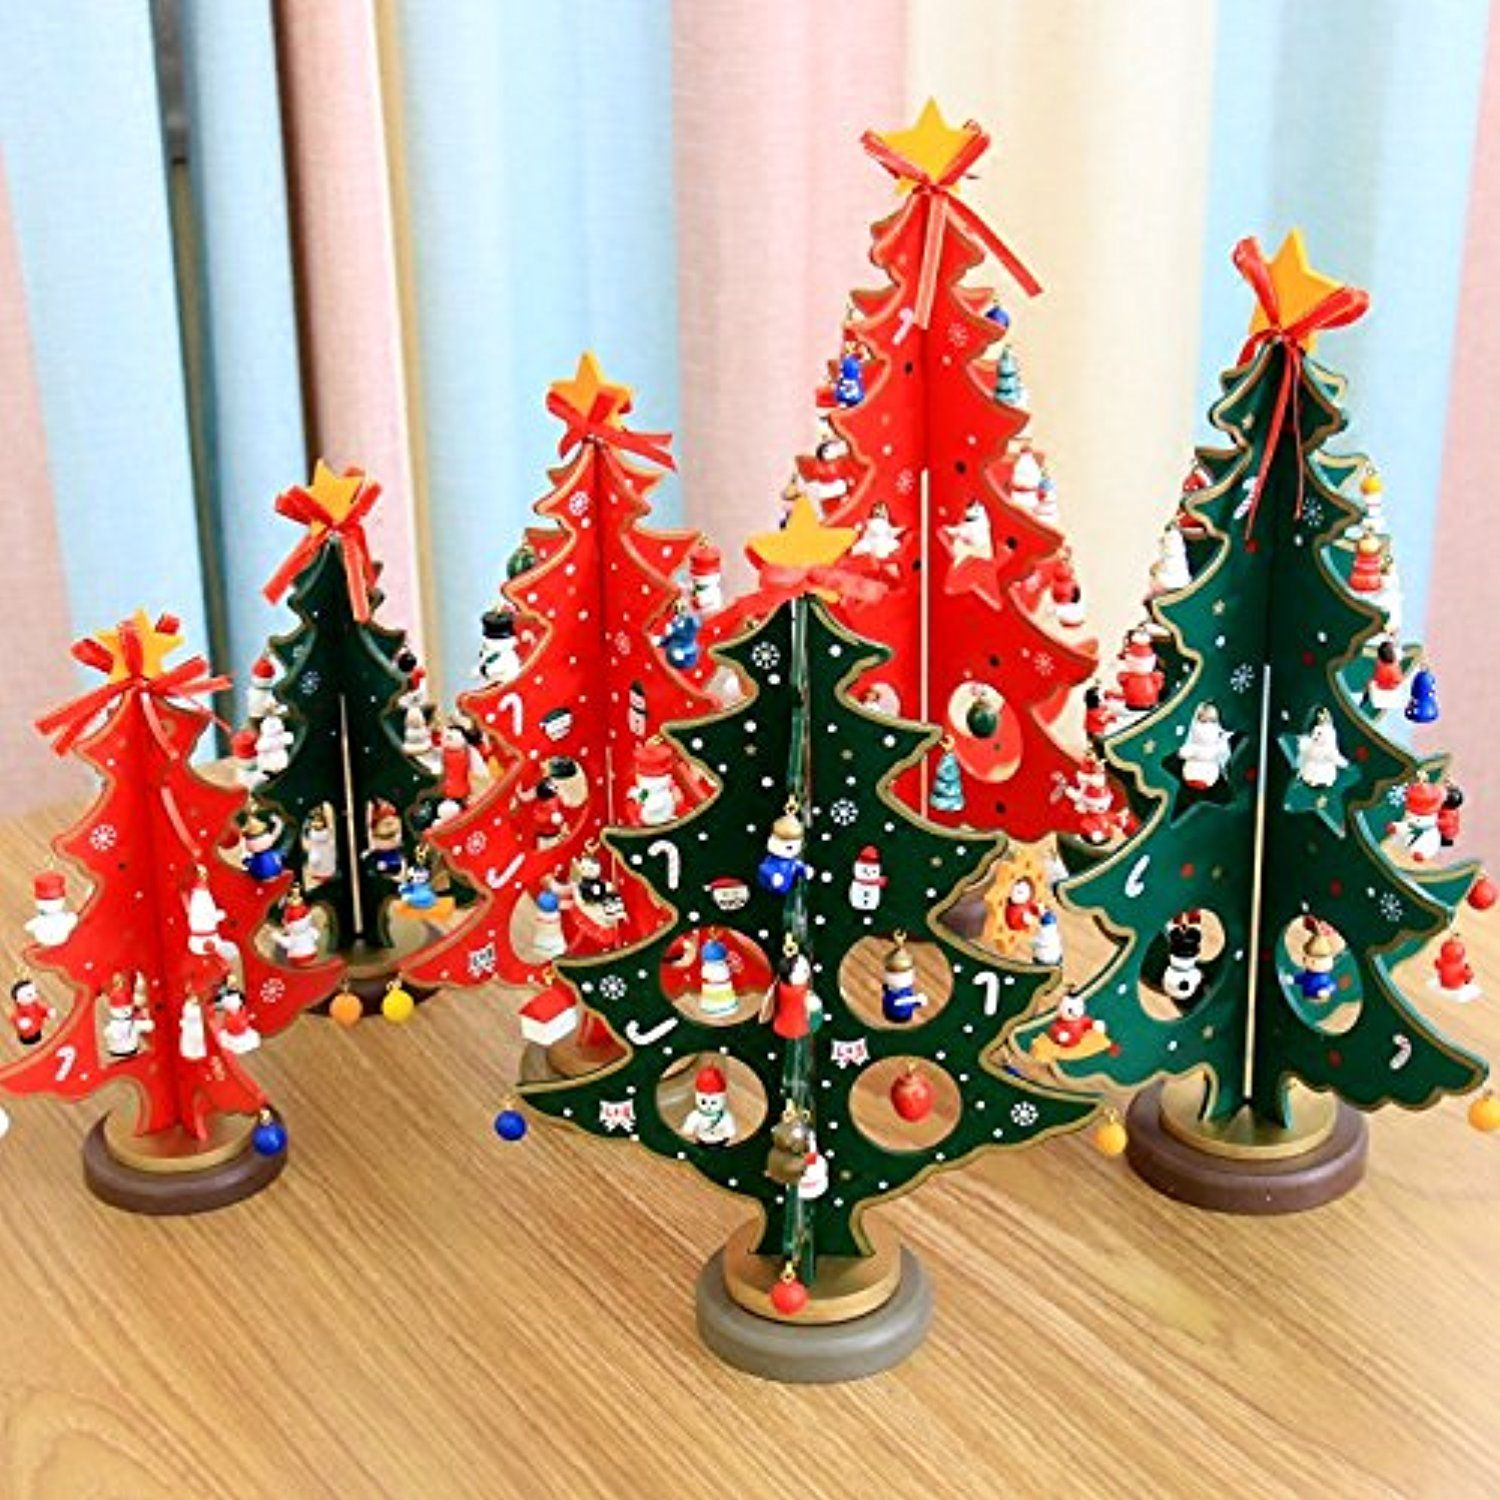 Small wooden christmas tree ornaments - Gaoyu Christmas Decorations Wooden Christmas Tree Desk Small Wooden Diy Mini Christmas Tree Ornaments Scene